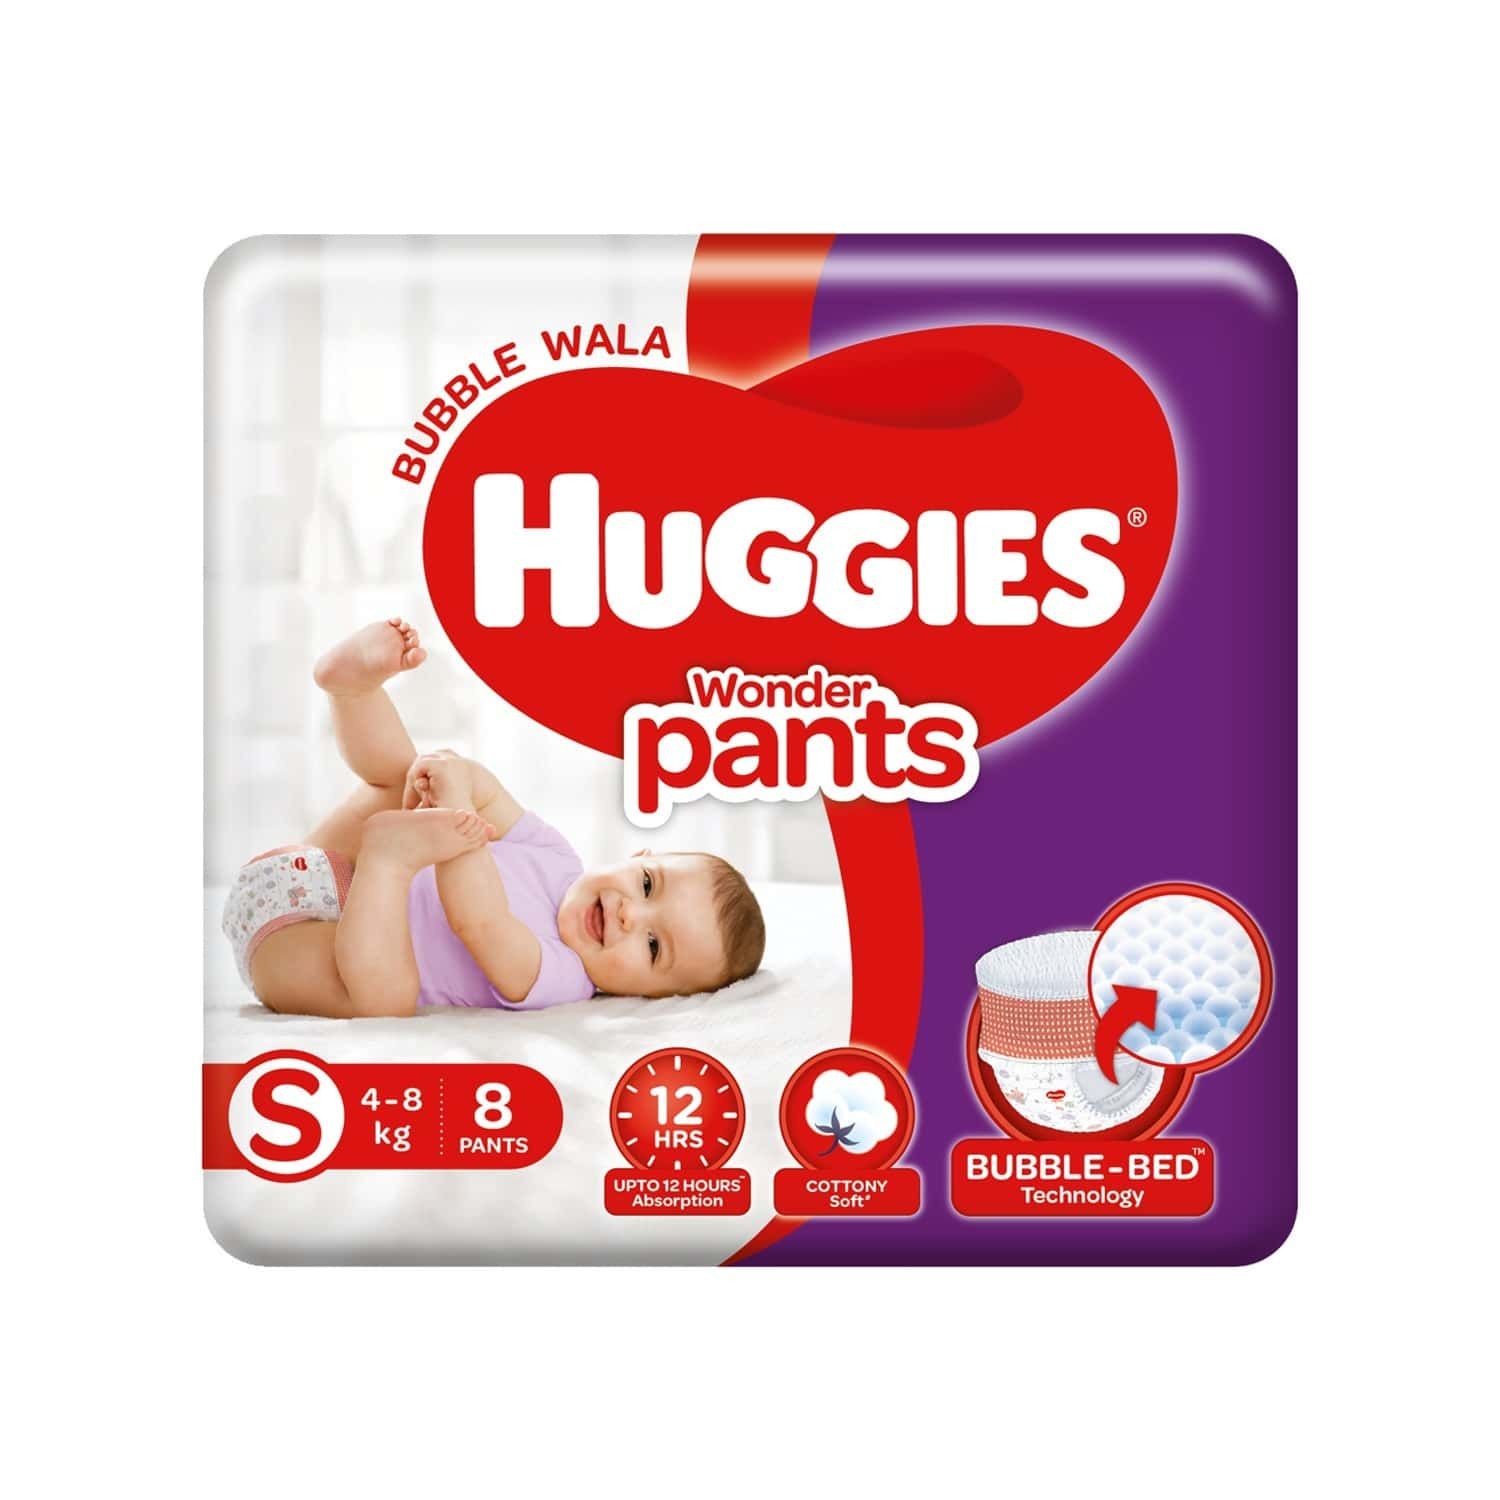 Huggies Wonder Pants Diapers, Small Size - 8 Count